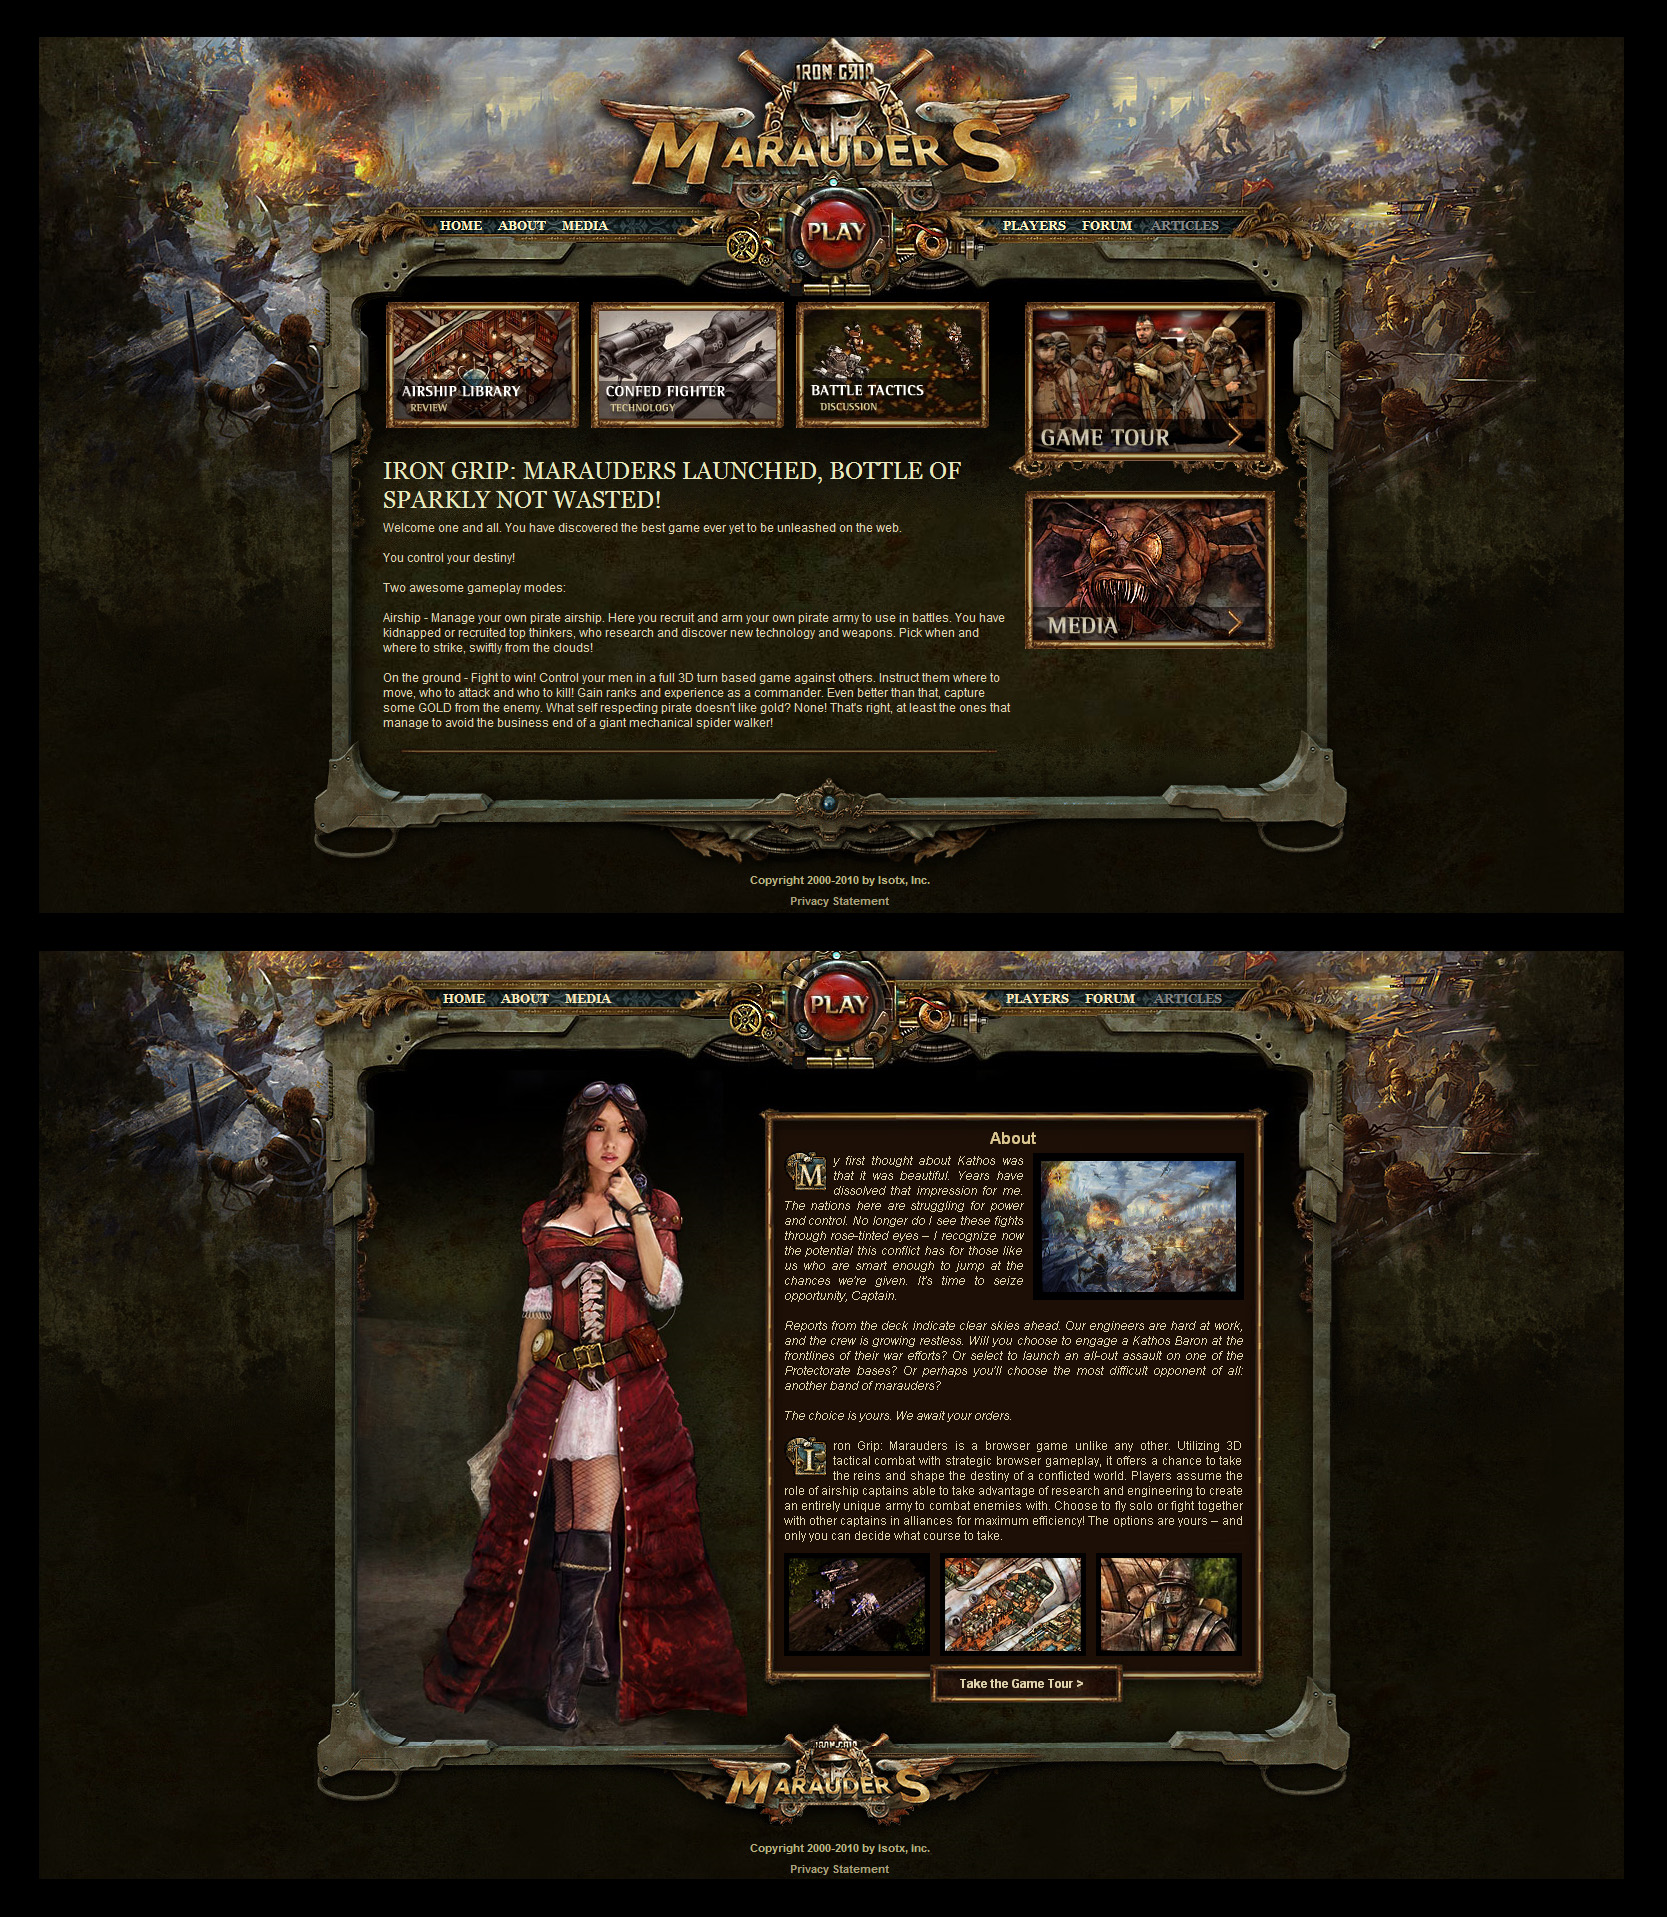 Marauders Game Site Design By Karsten On DeviantArt - Game design websites